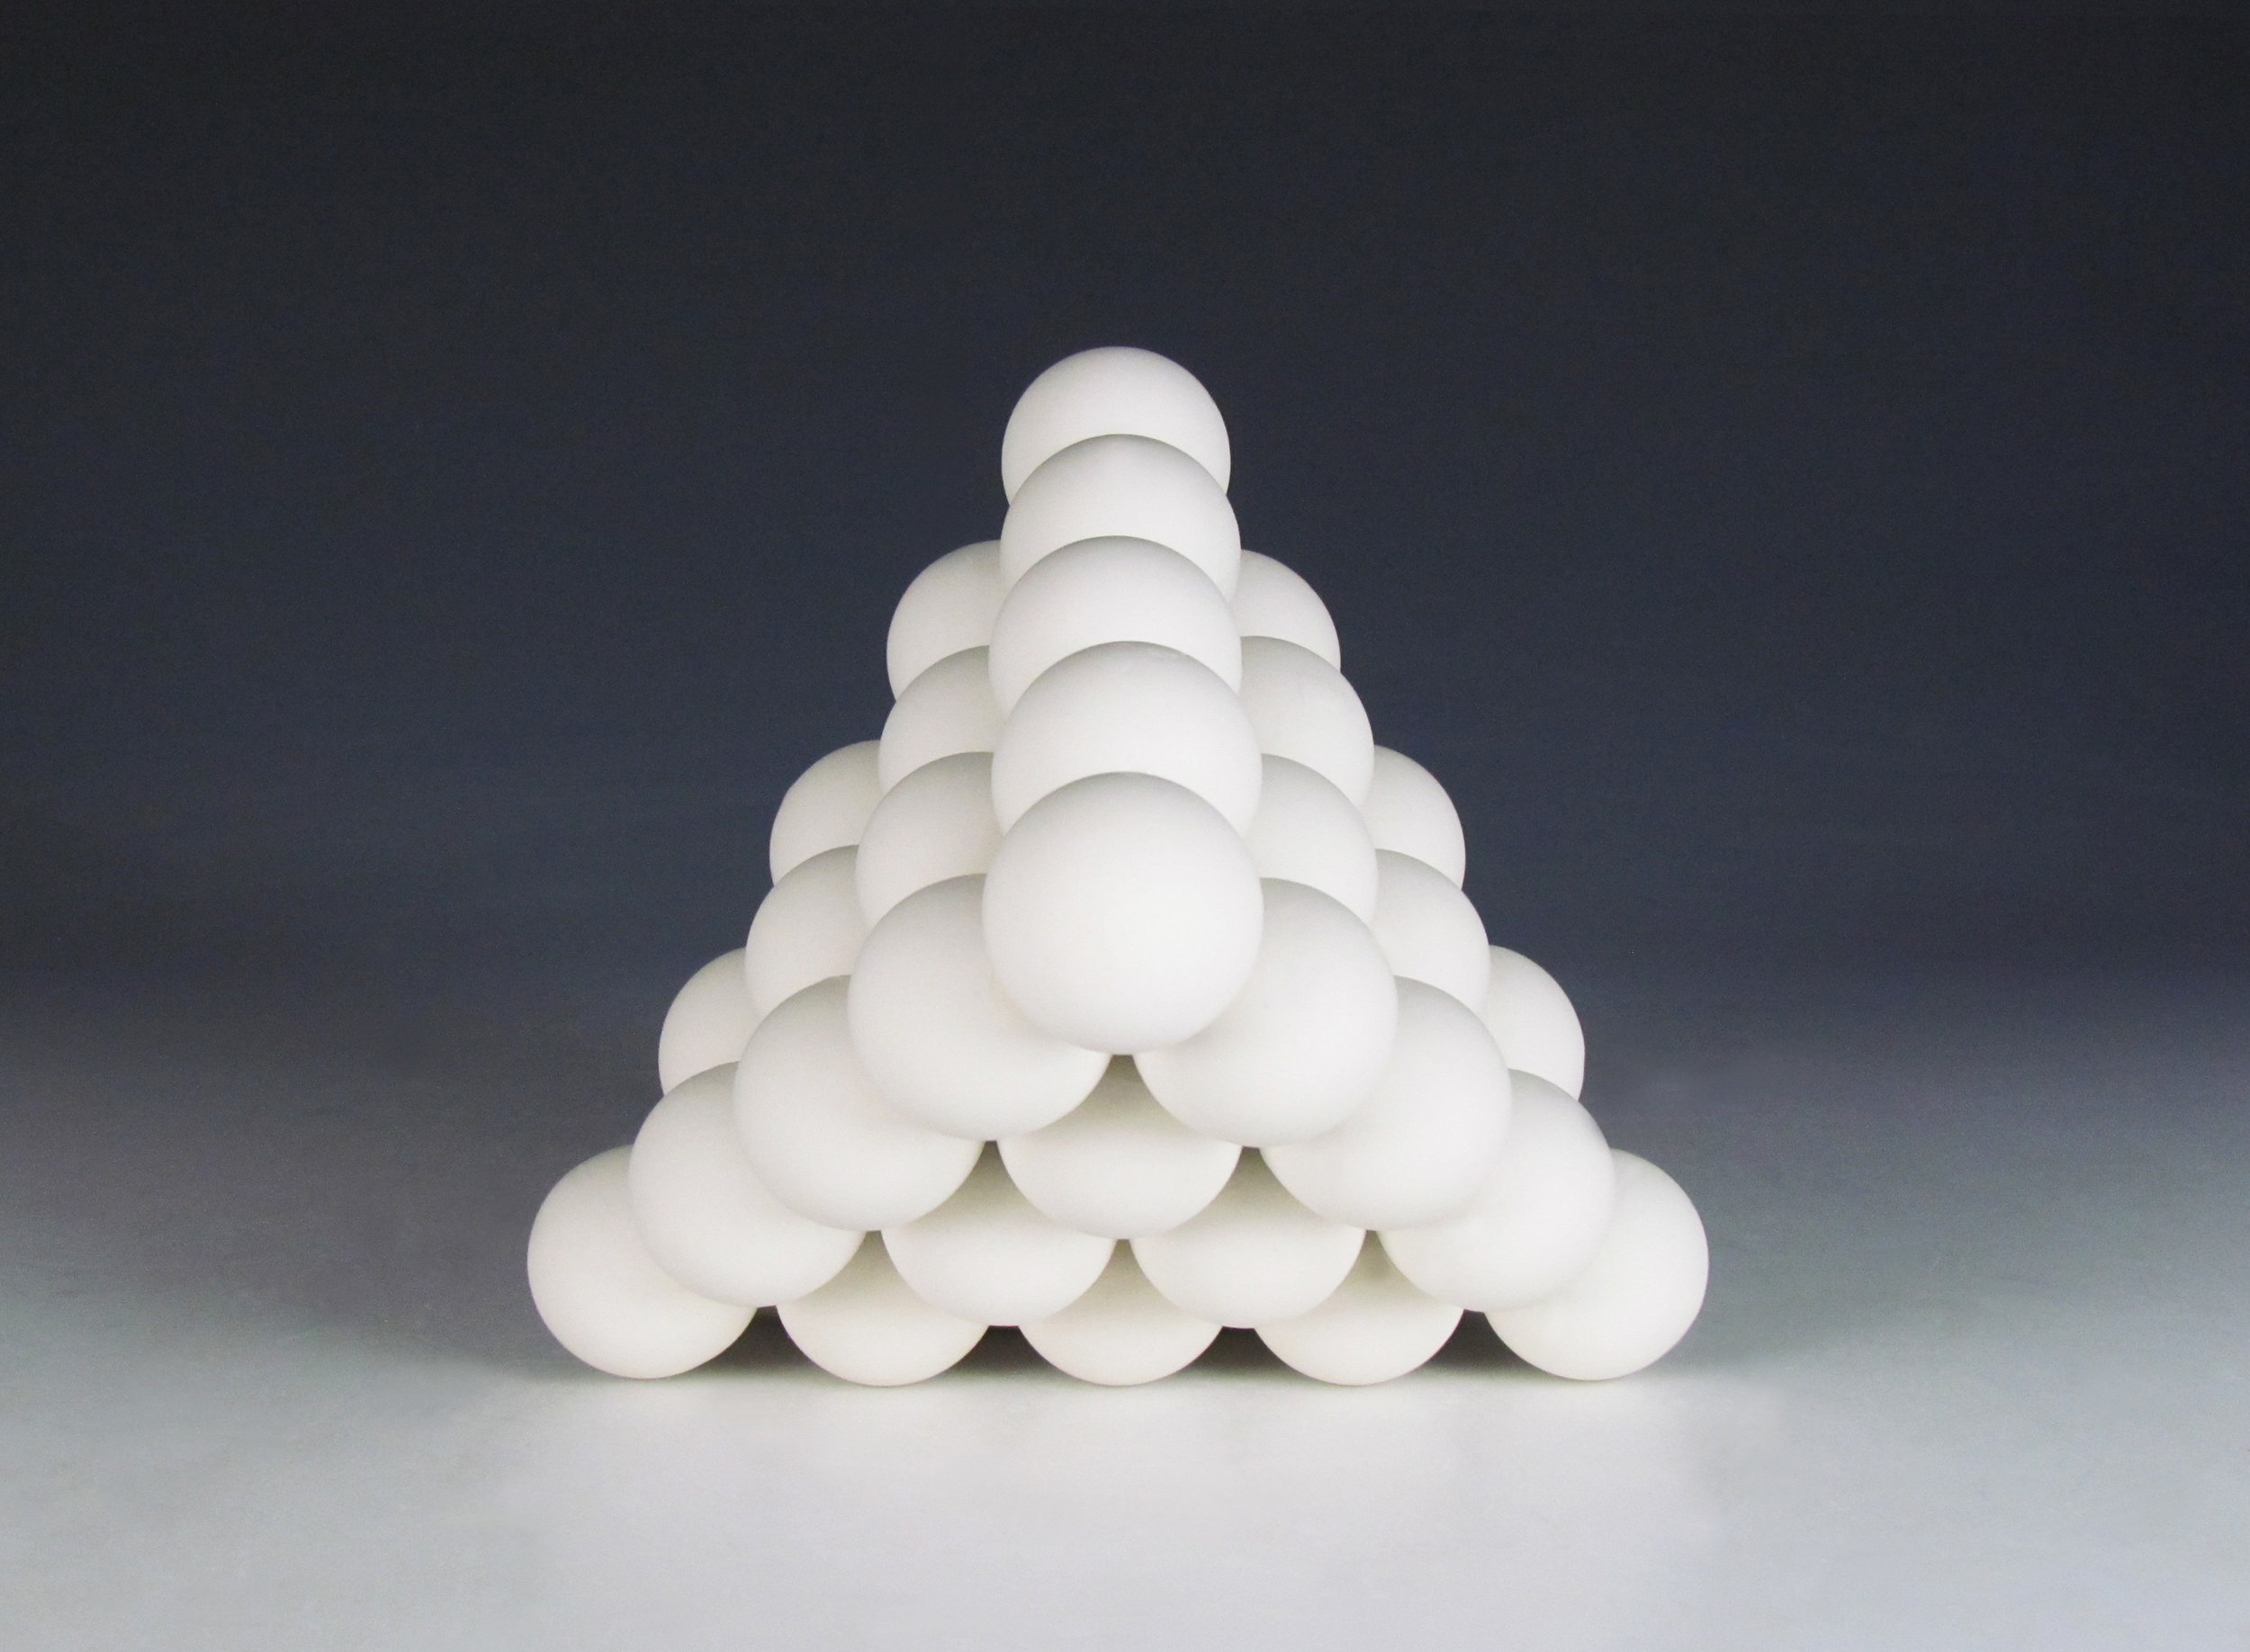 Ionic Series: Octahedron  |  5 x 5 x 12 inches  |  Porcelain  |  2016